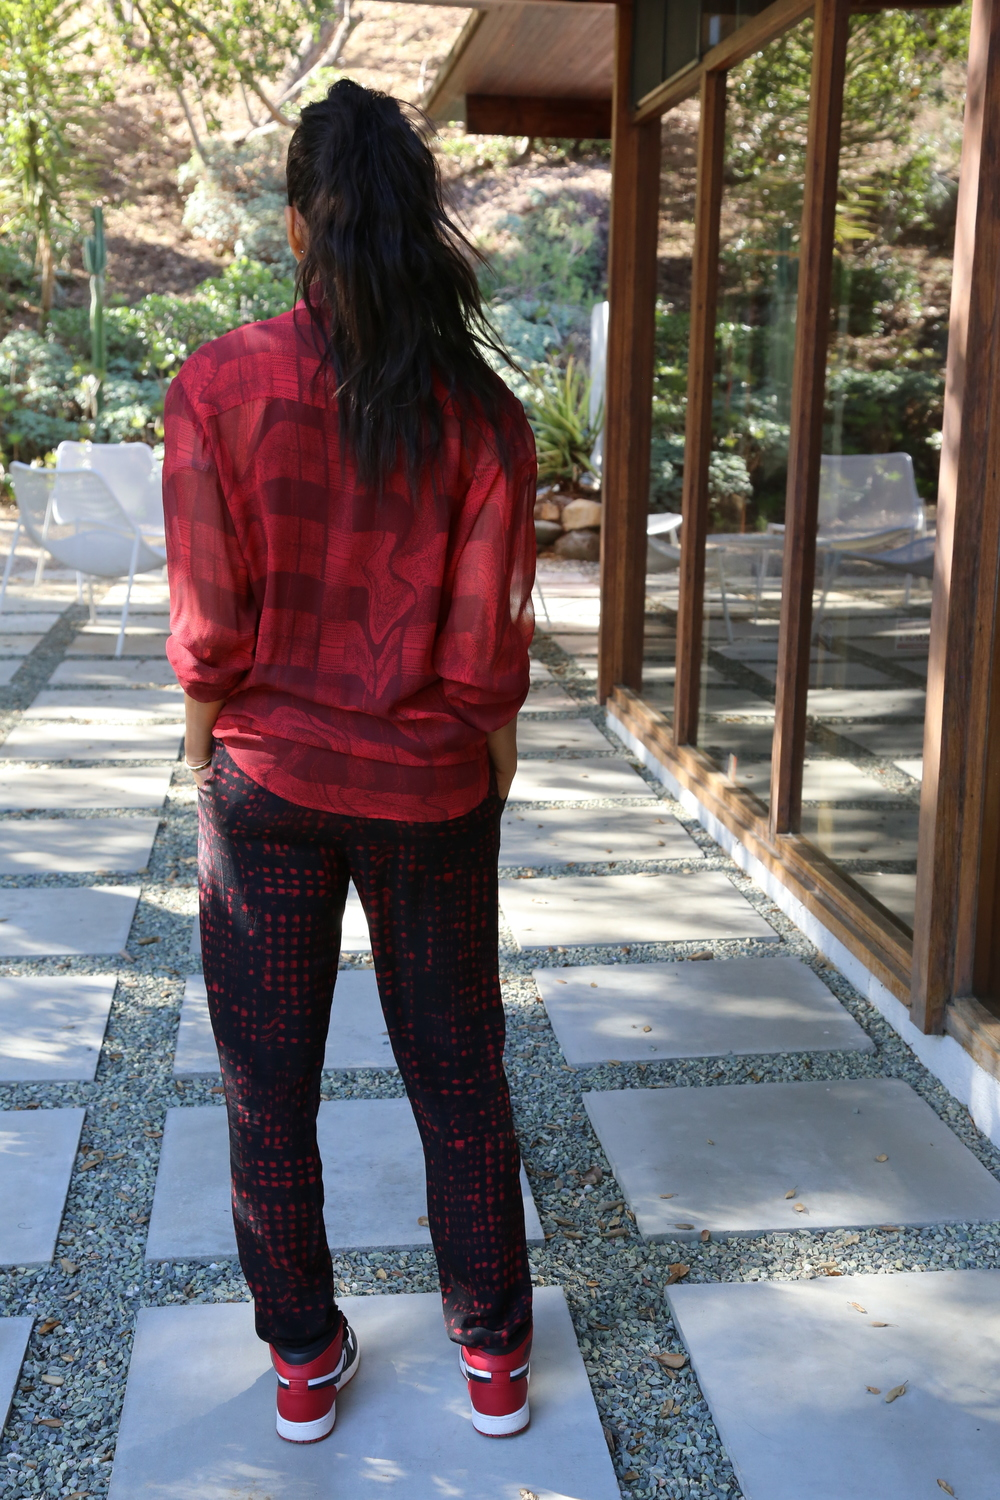 isabel-marant-pants-silky-red-print-leather-moto-jacket-jordans-los-angeles.jpg